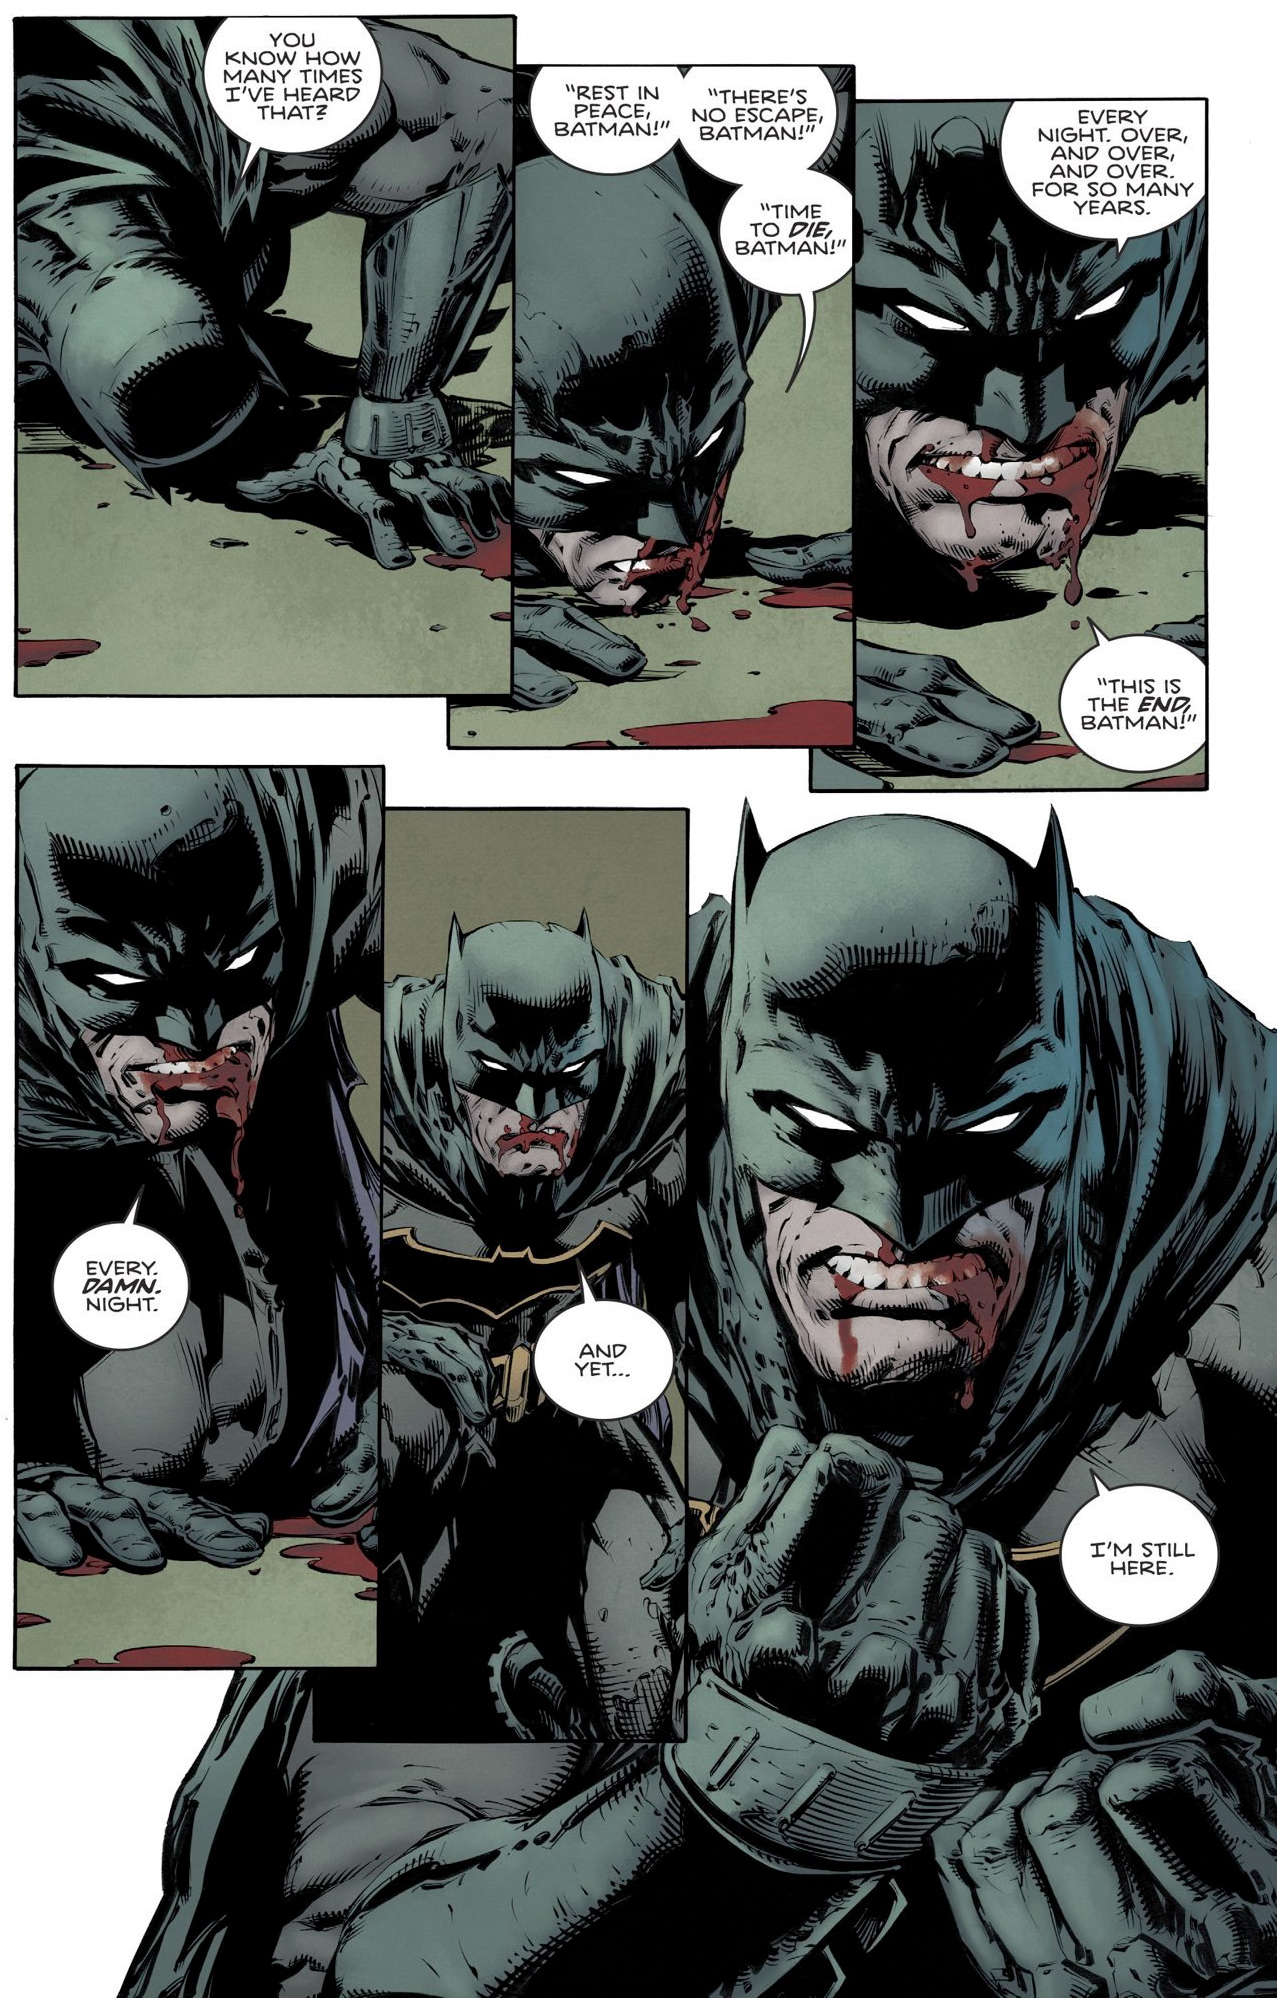 Panels from a Batman comic book, showing a bloodied Batman getting up from the floor: You know how many times I've heard that? 'Rest in peace, Batman!' 'There's no escape, Batman!' 'Time to die, Batman!' Every night. Over and over and over. For so many years. 'This is the end, Batman!' Every damn night. And yet... I'm still here.